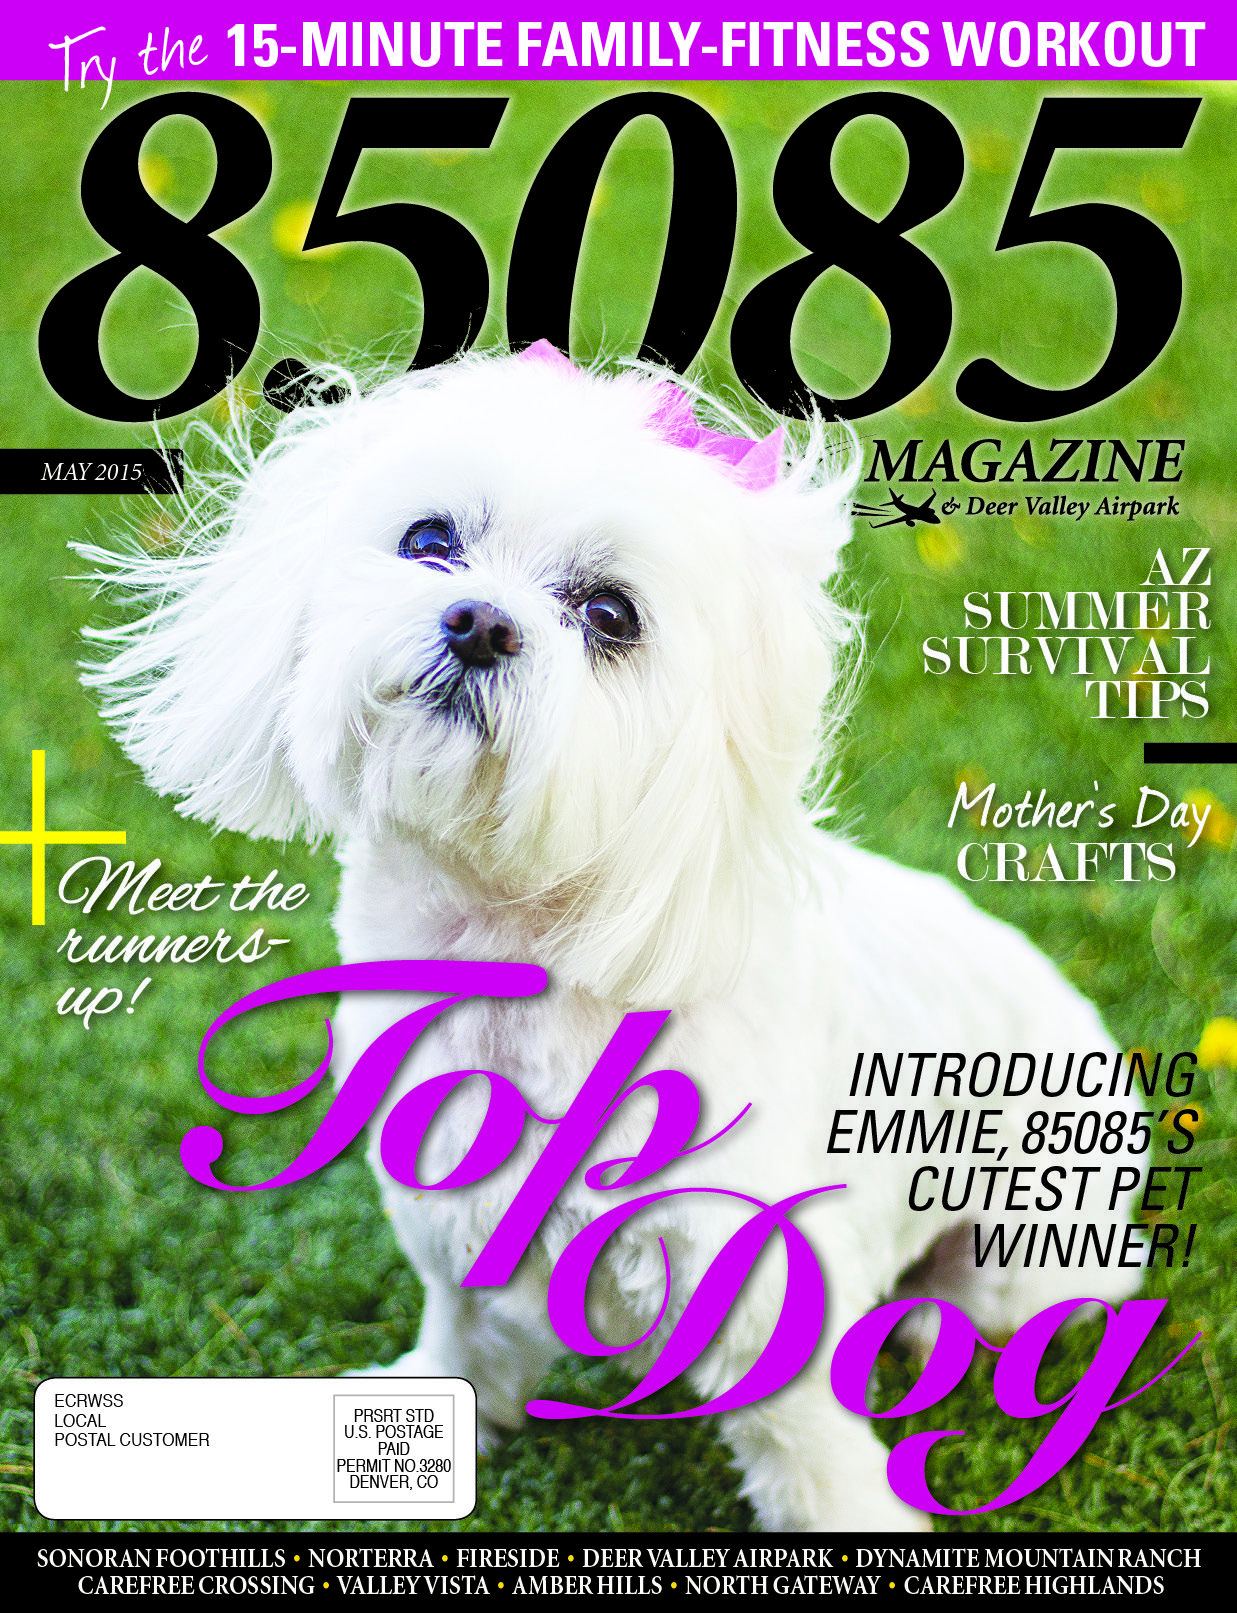 The May '15 issue of 85085 Magazine, produced by The Media Barr, Inc.  www.85085magazine.com www.themediabarr.com